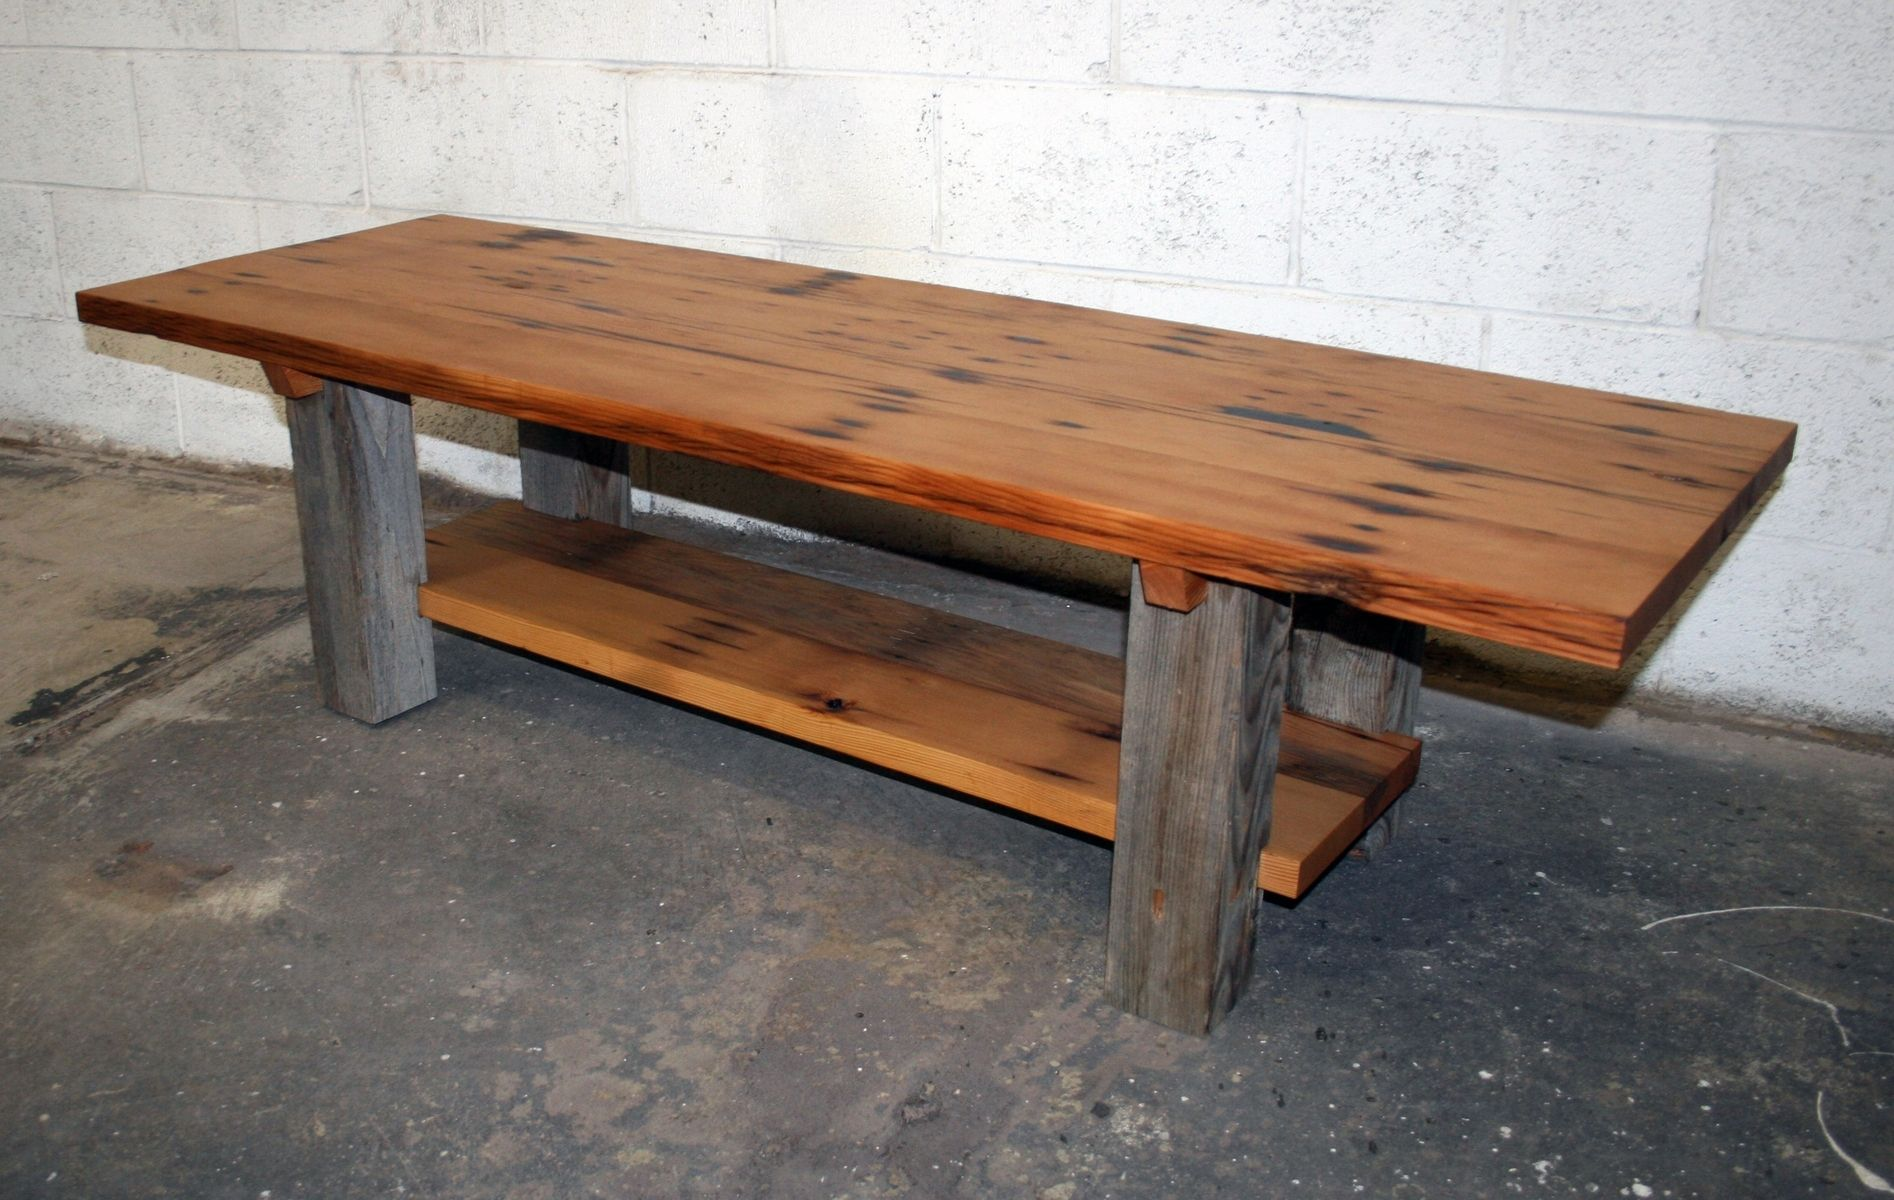 Hand Made Reclaimed Fir And Barn Wood Coffee Table By Historicwoods By Lunarcanyon